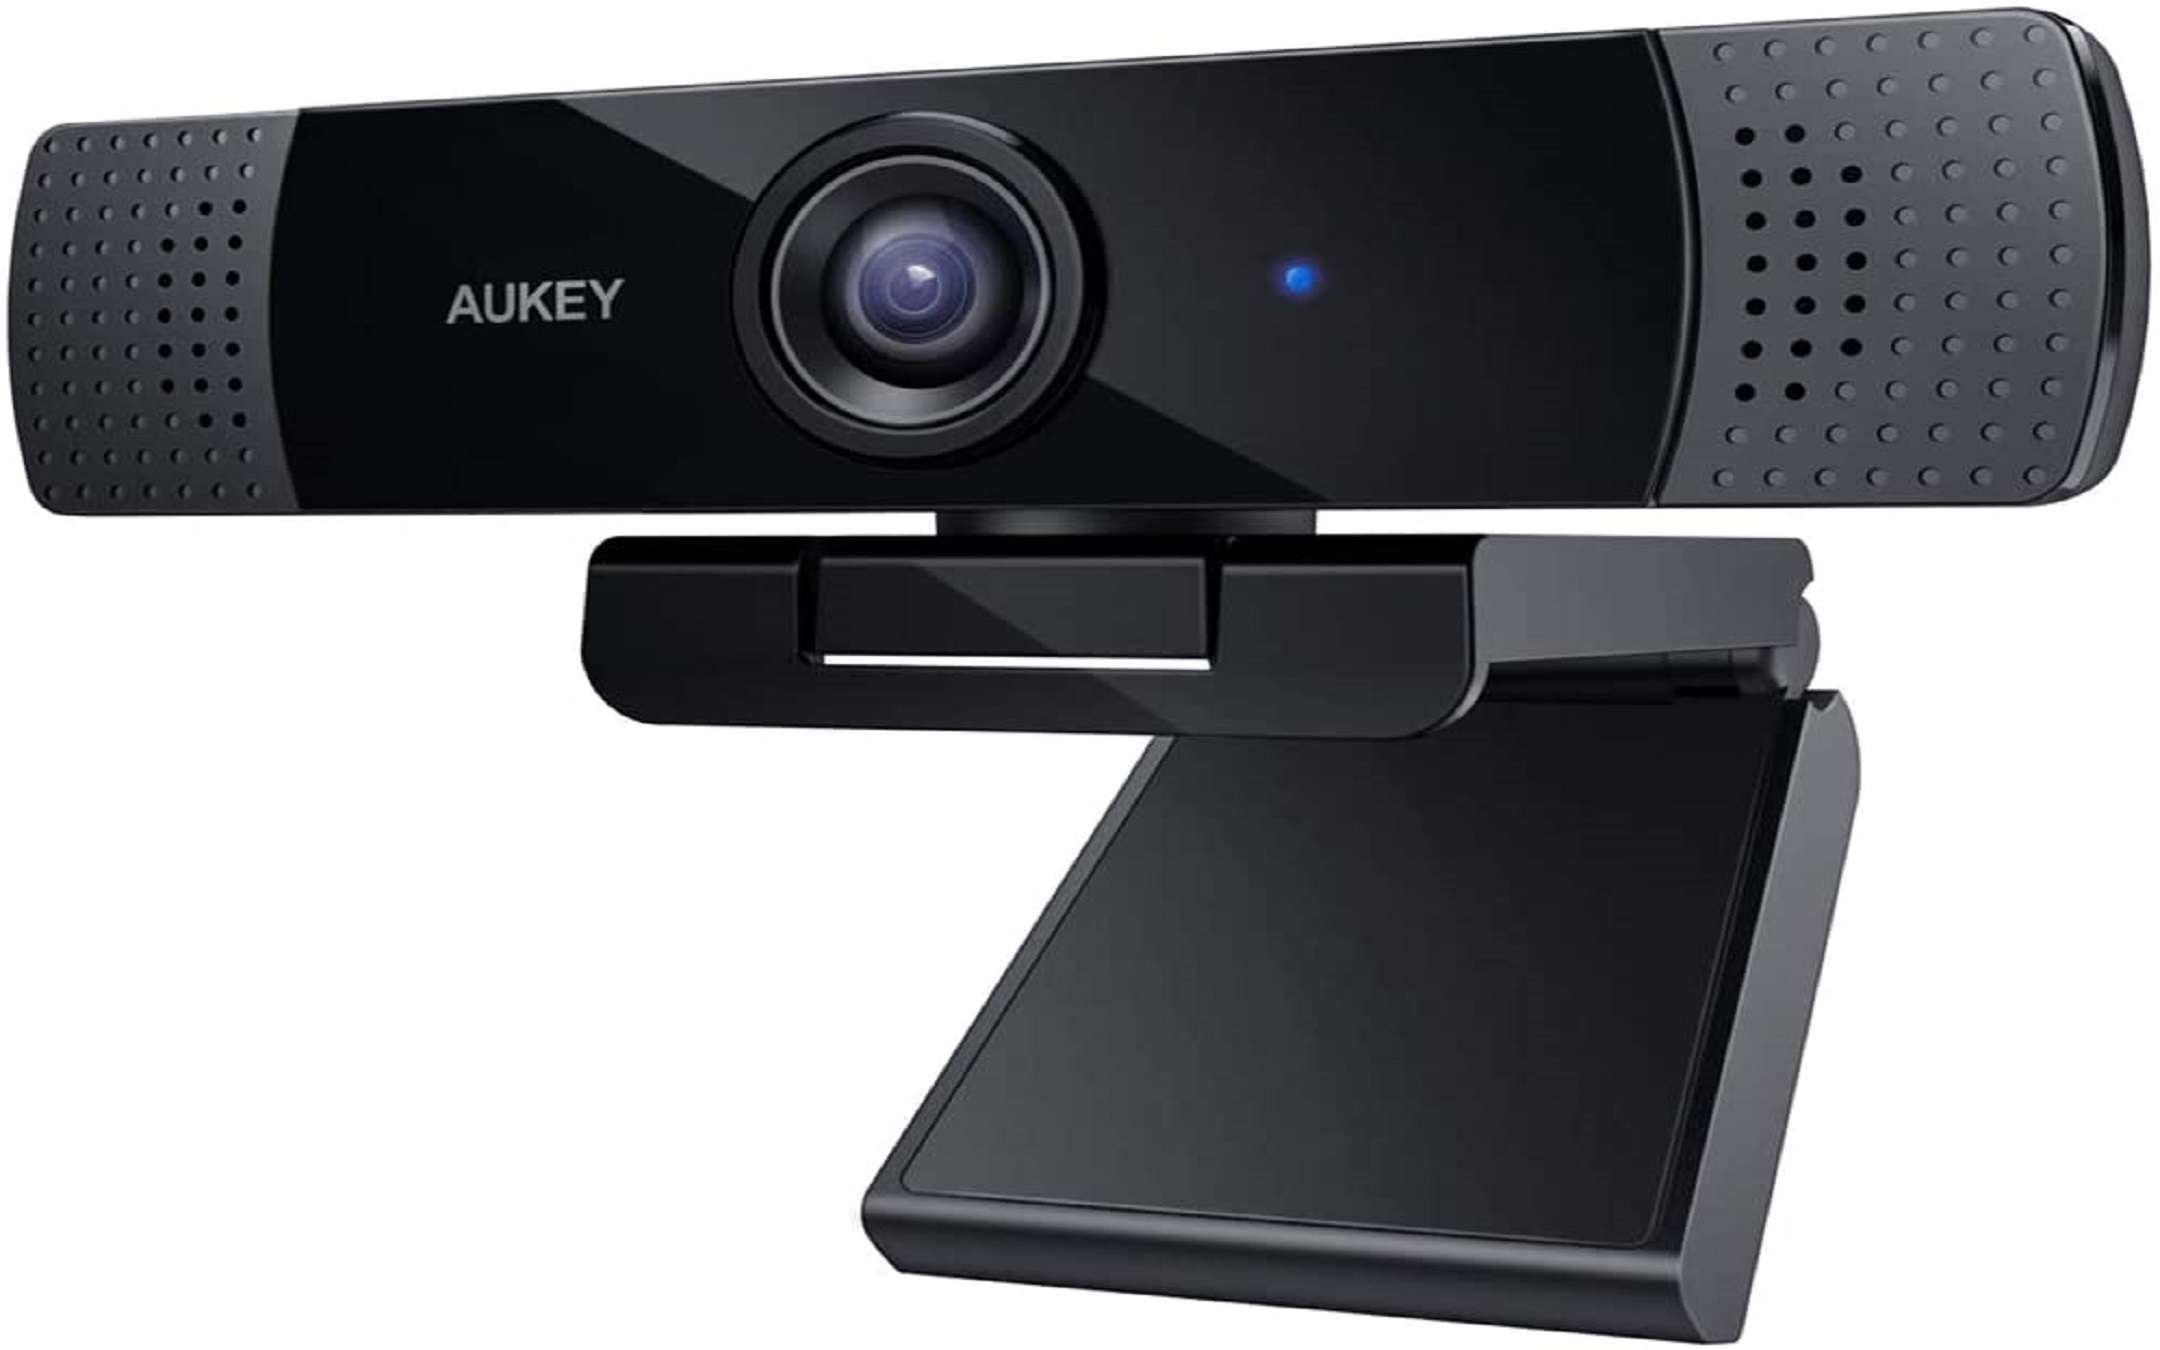 Aukey FullHD webcam at the lowest price ever!